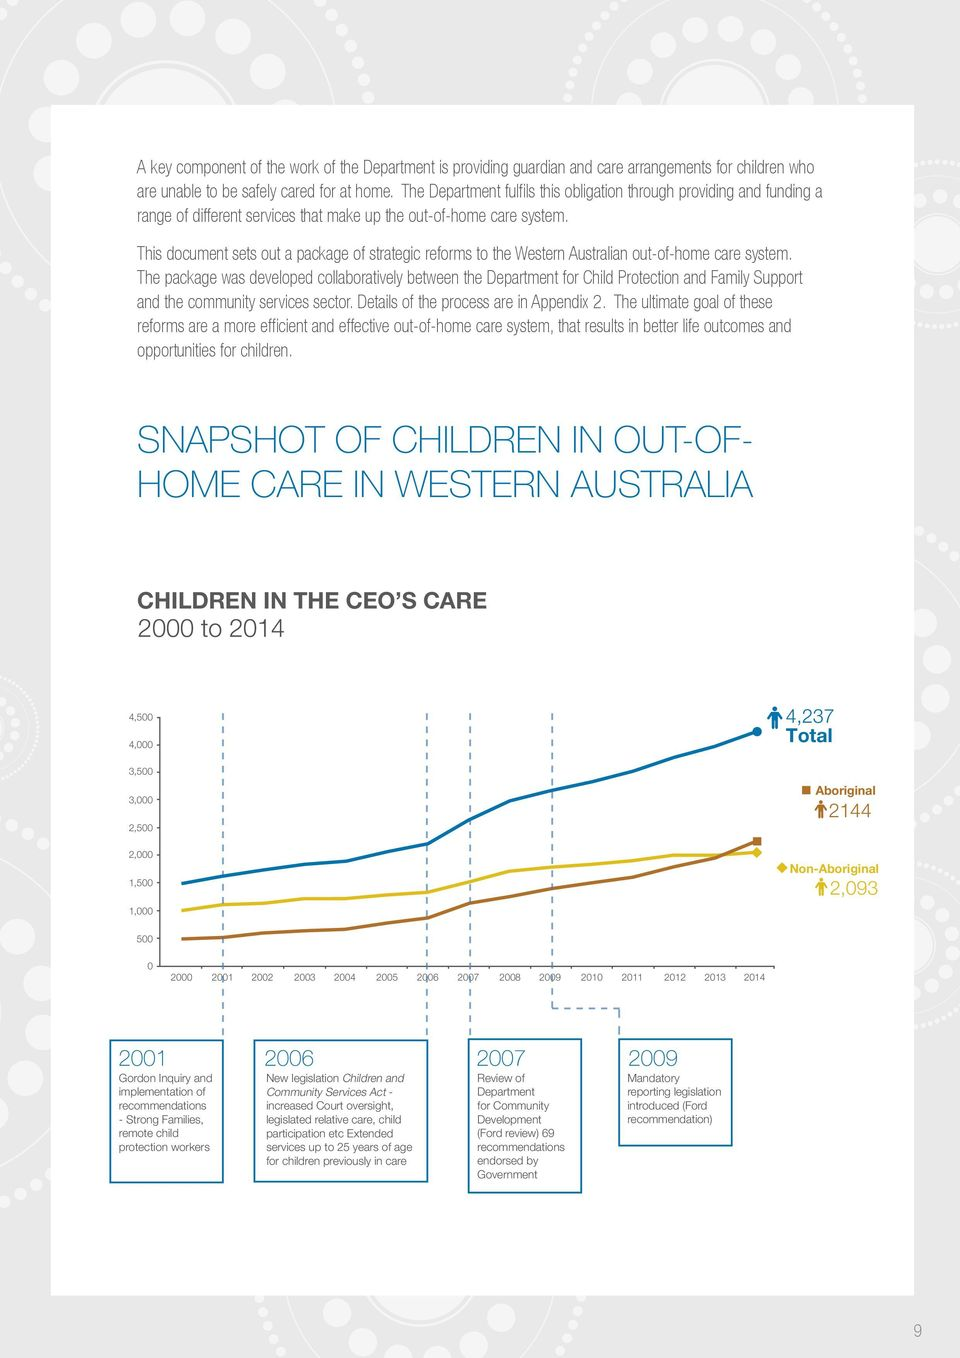 This document sets out a package of strategic reforms to the Western Australian out-of-home care system.